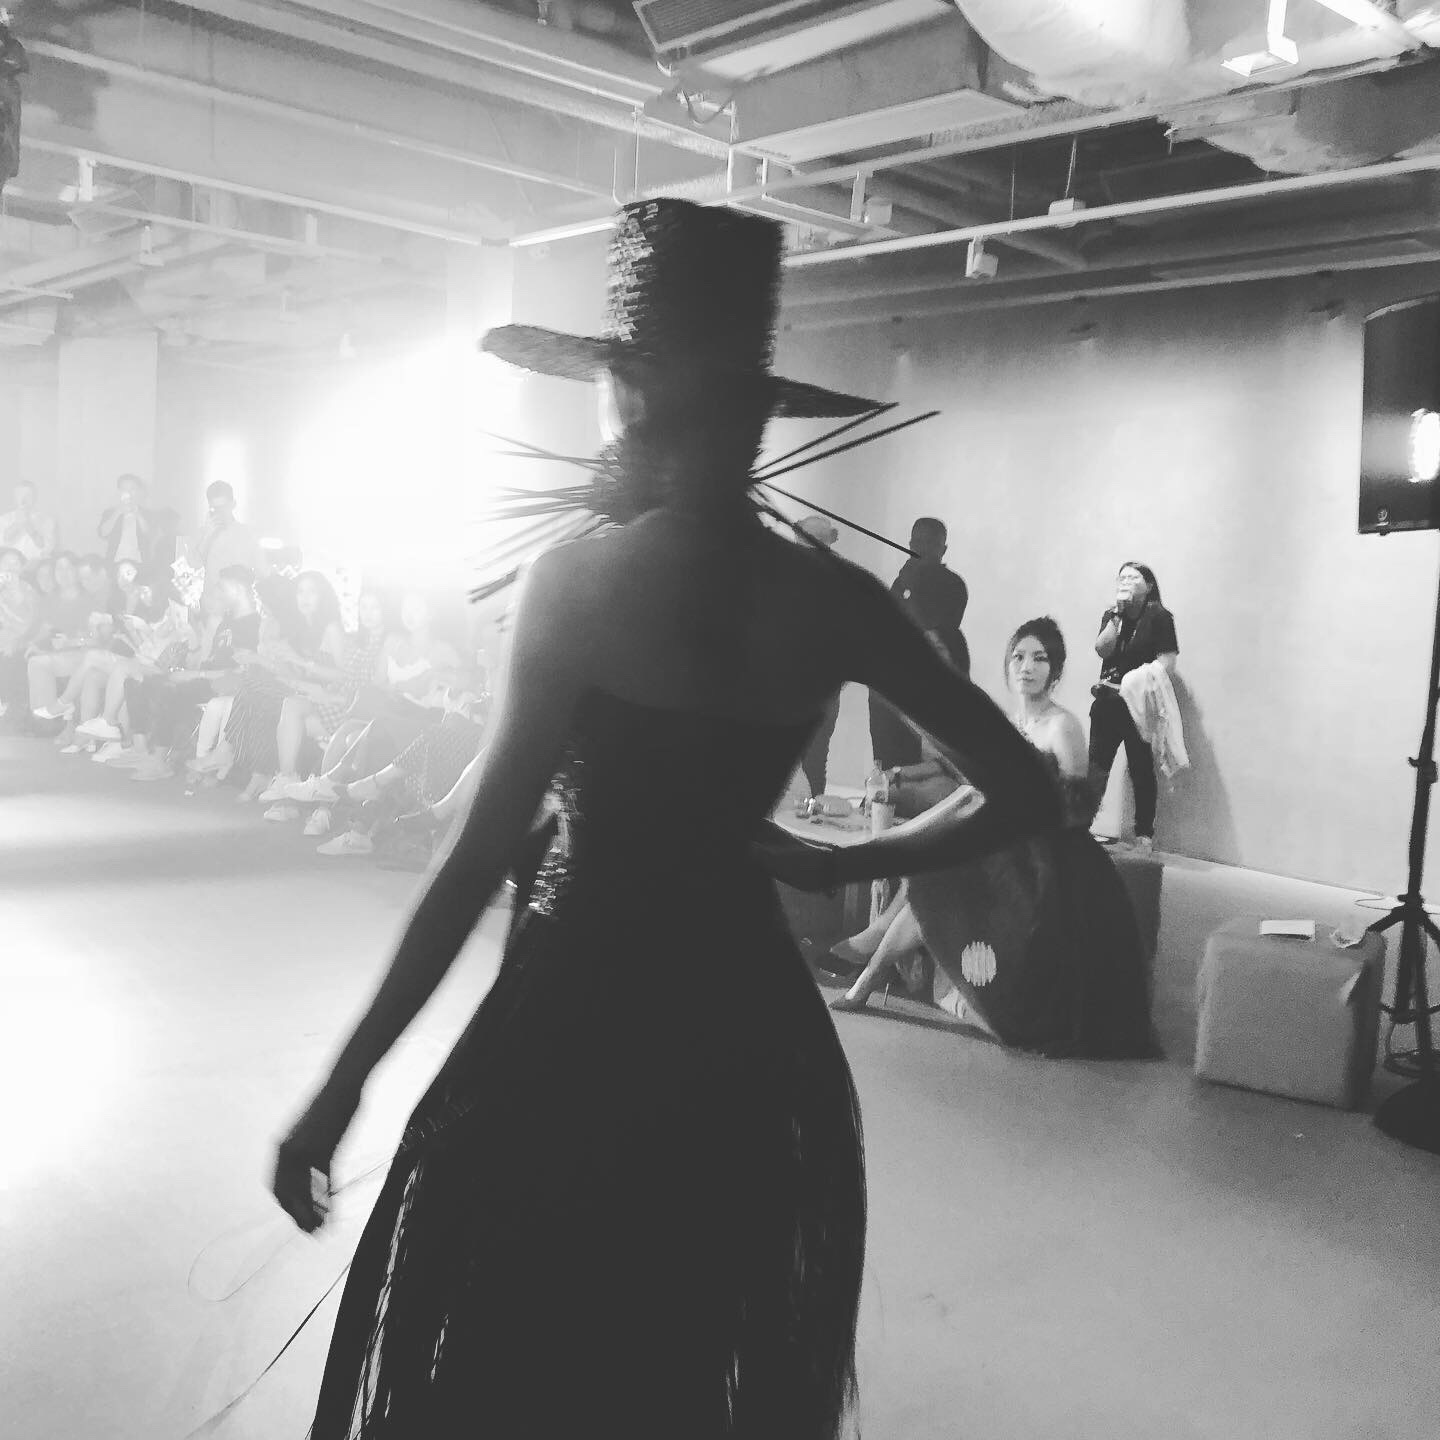 Hong Kong LUMIERE FASHION SHOW 2019 - June 2019 I hosted 6 designers at HKFW. We participated in the Lumiere Fashion Show, attended HKFW and numerous business events. I consulted as part of the Oyster Workshop team in collaboration with CAPE.